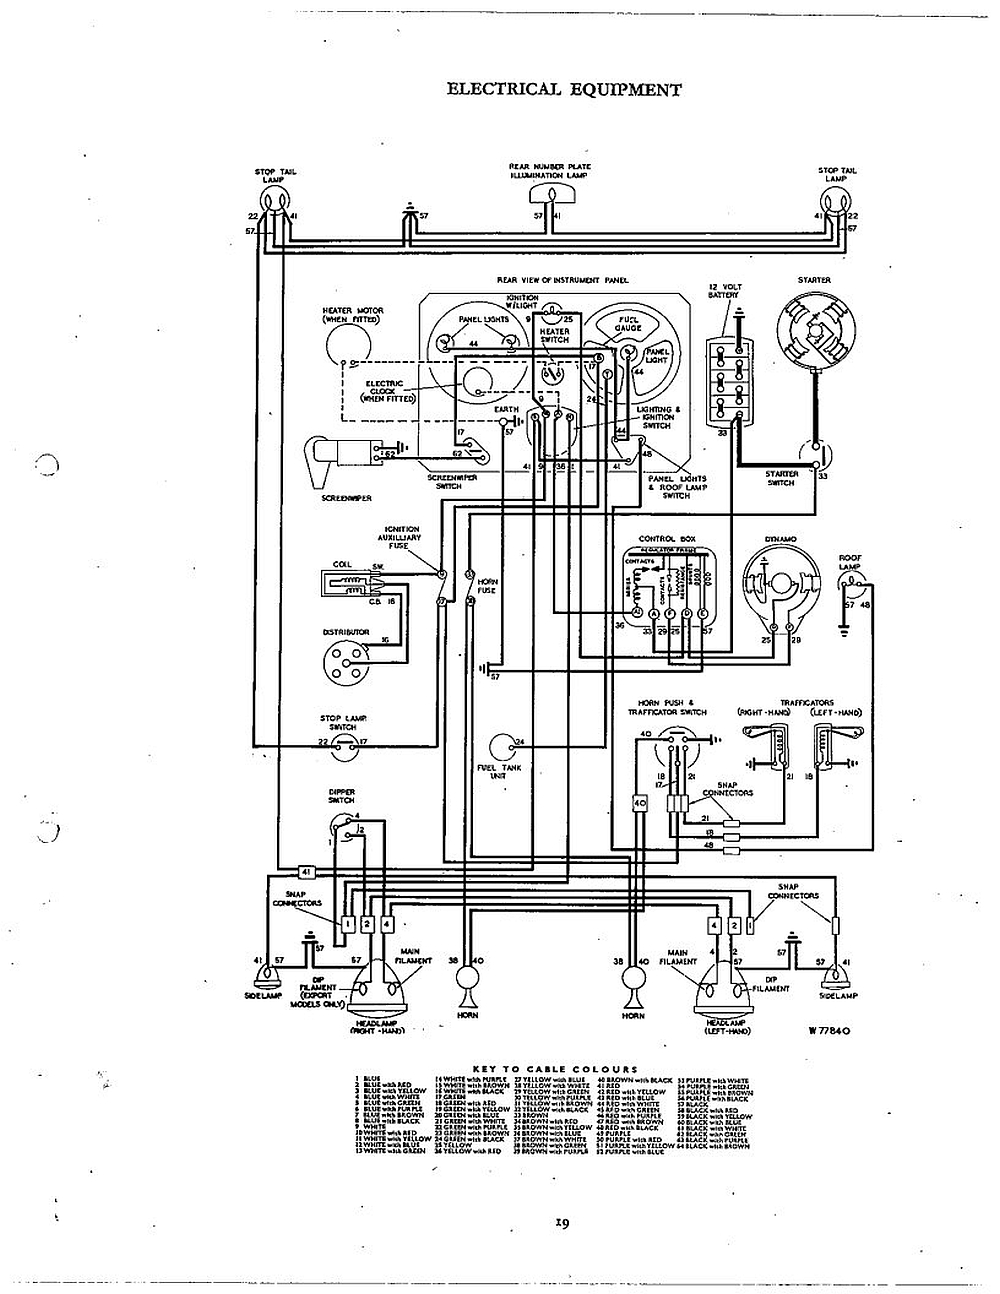 Outstanding Zig Unit Wiring Diagram Pattern - Best Images for wiring ...